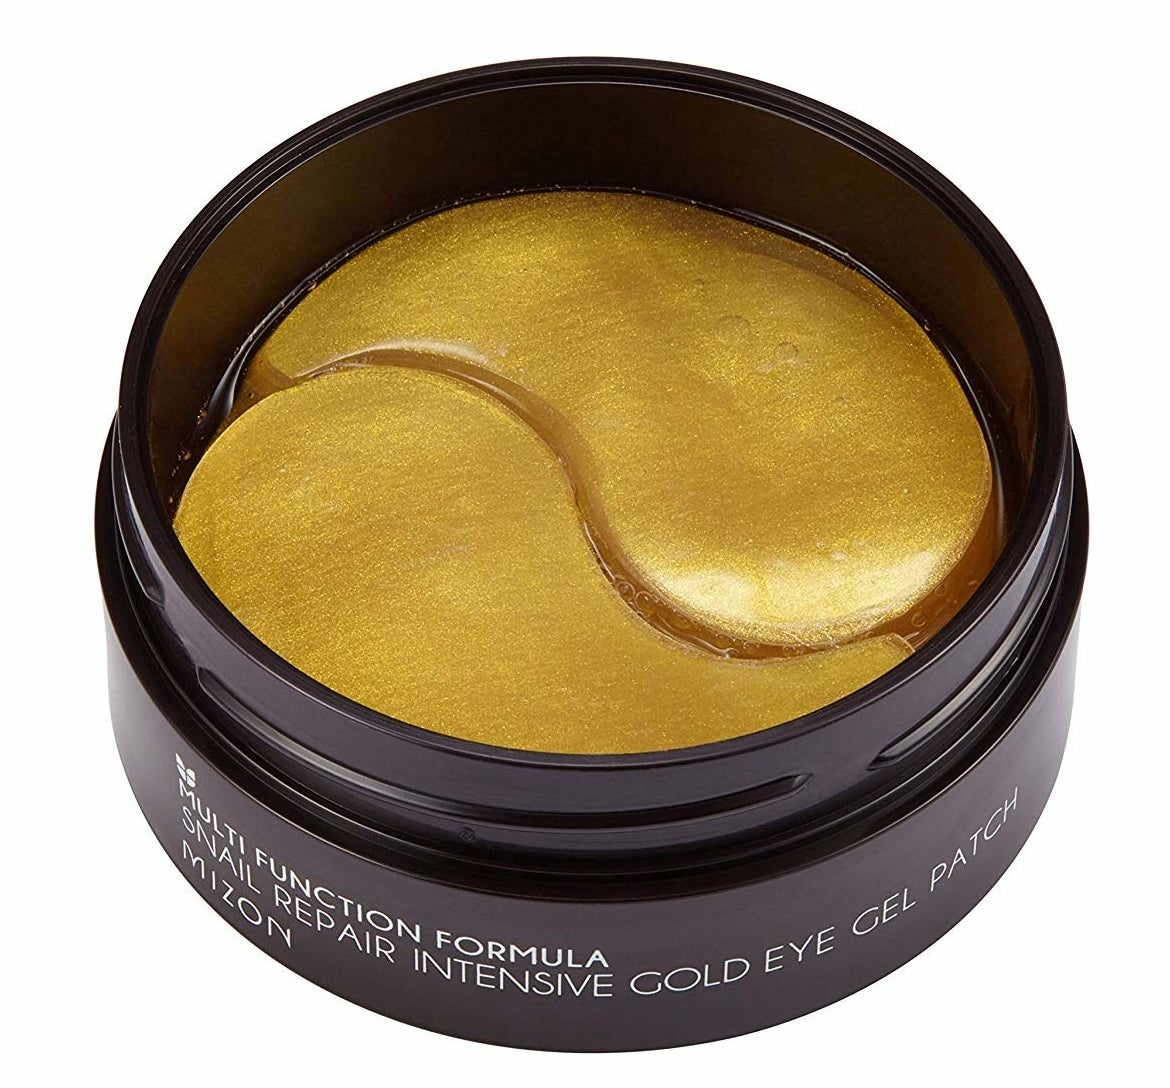 A jar of the eye masks in gold